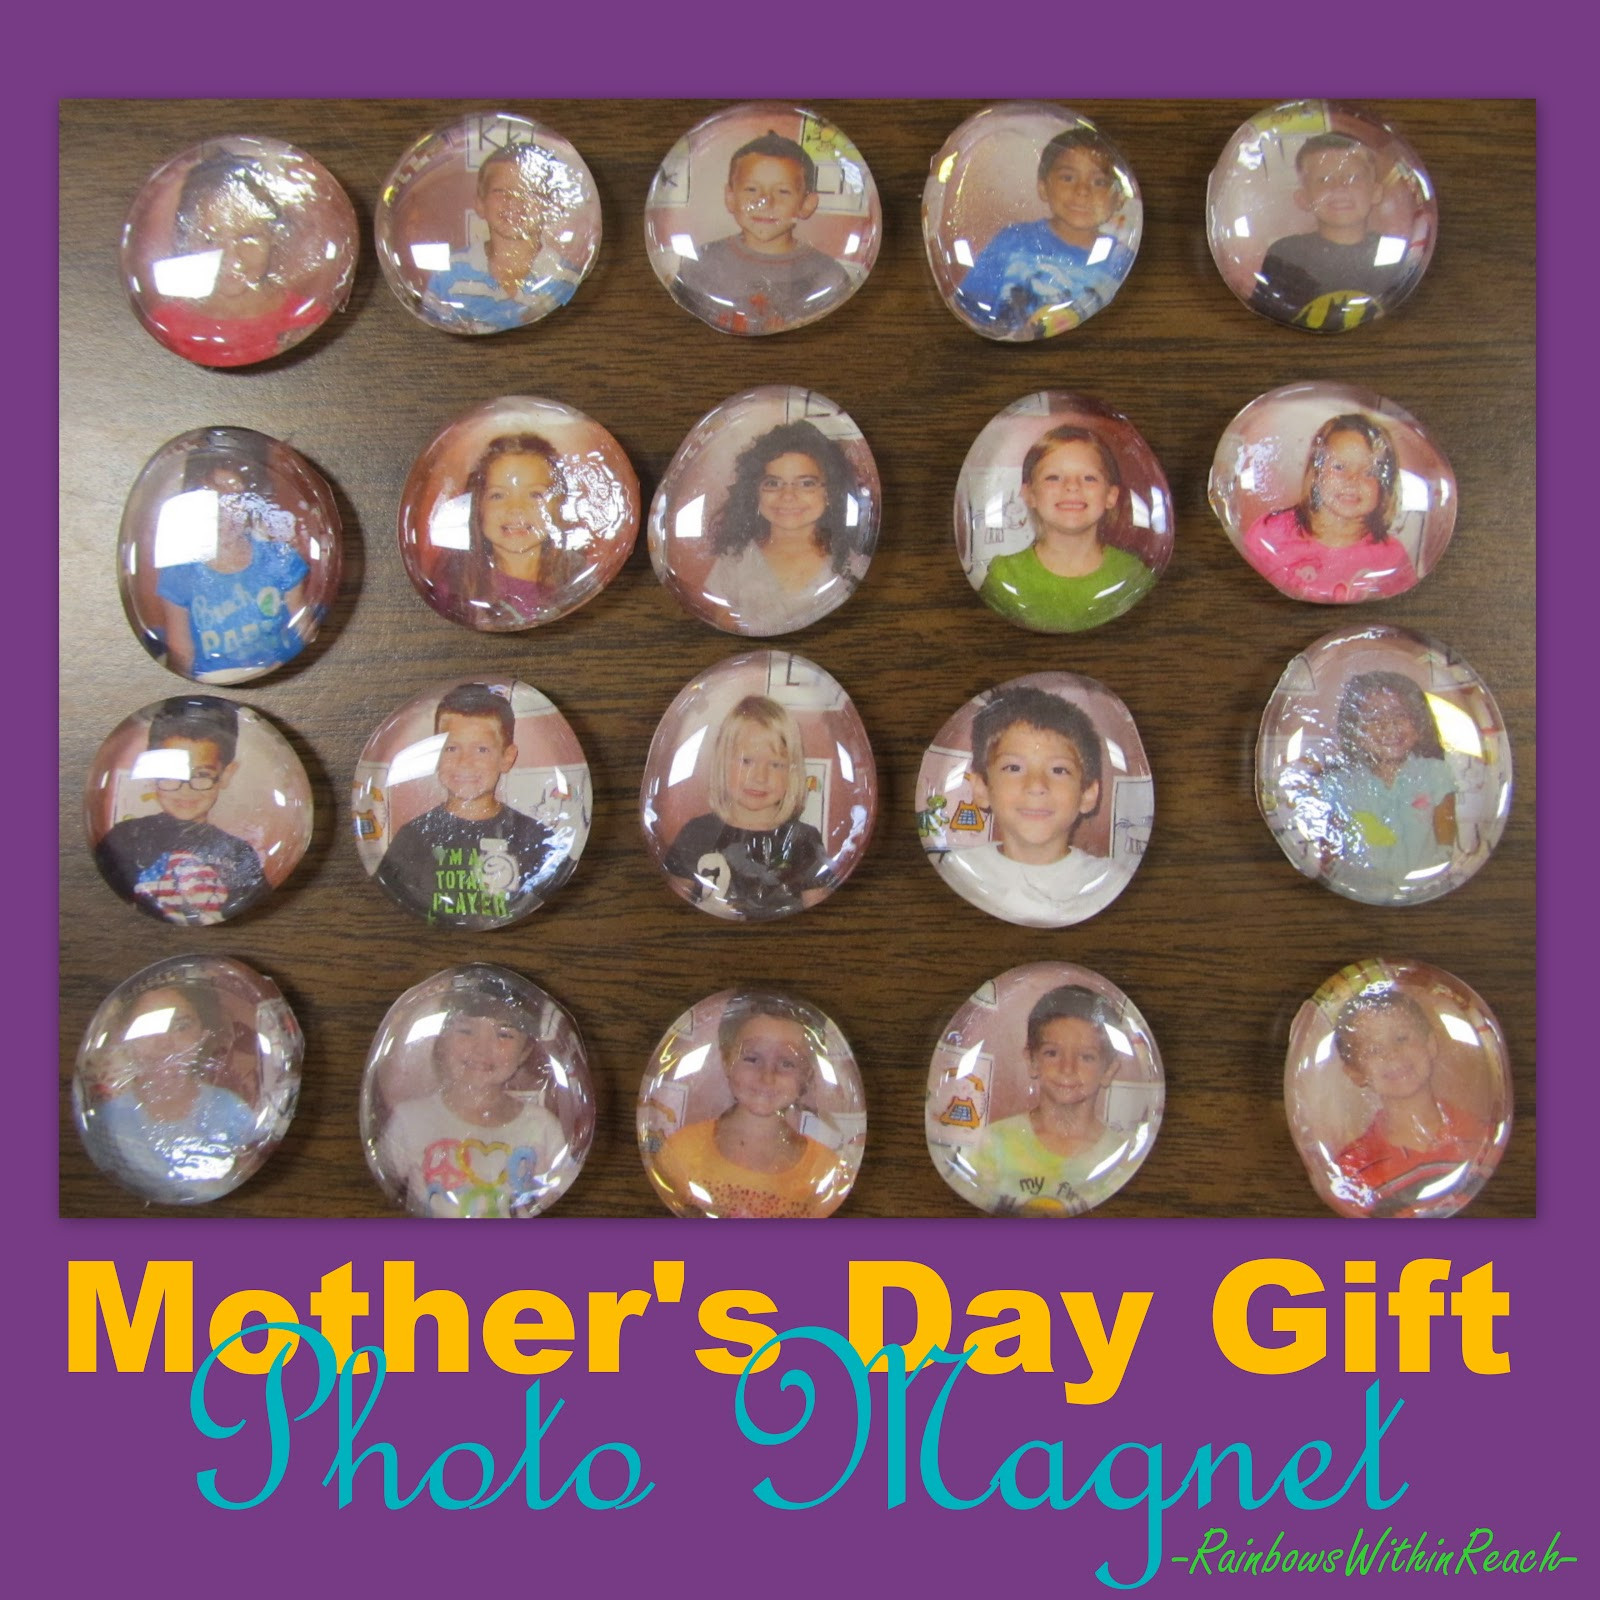 Preschool Mothers Day Gift Ideas  Mother s Day Gift Ideas Sugar Bee Crafts